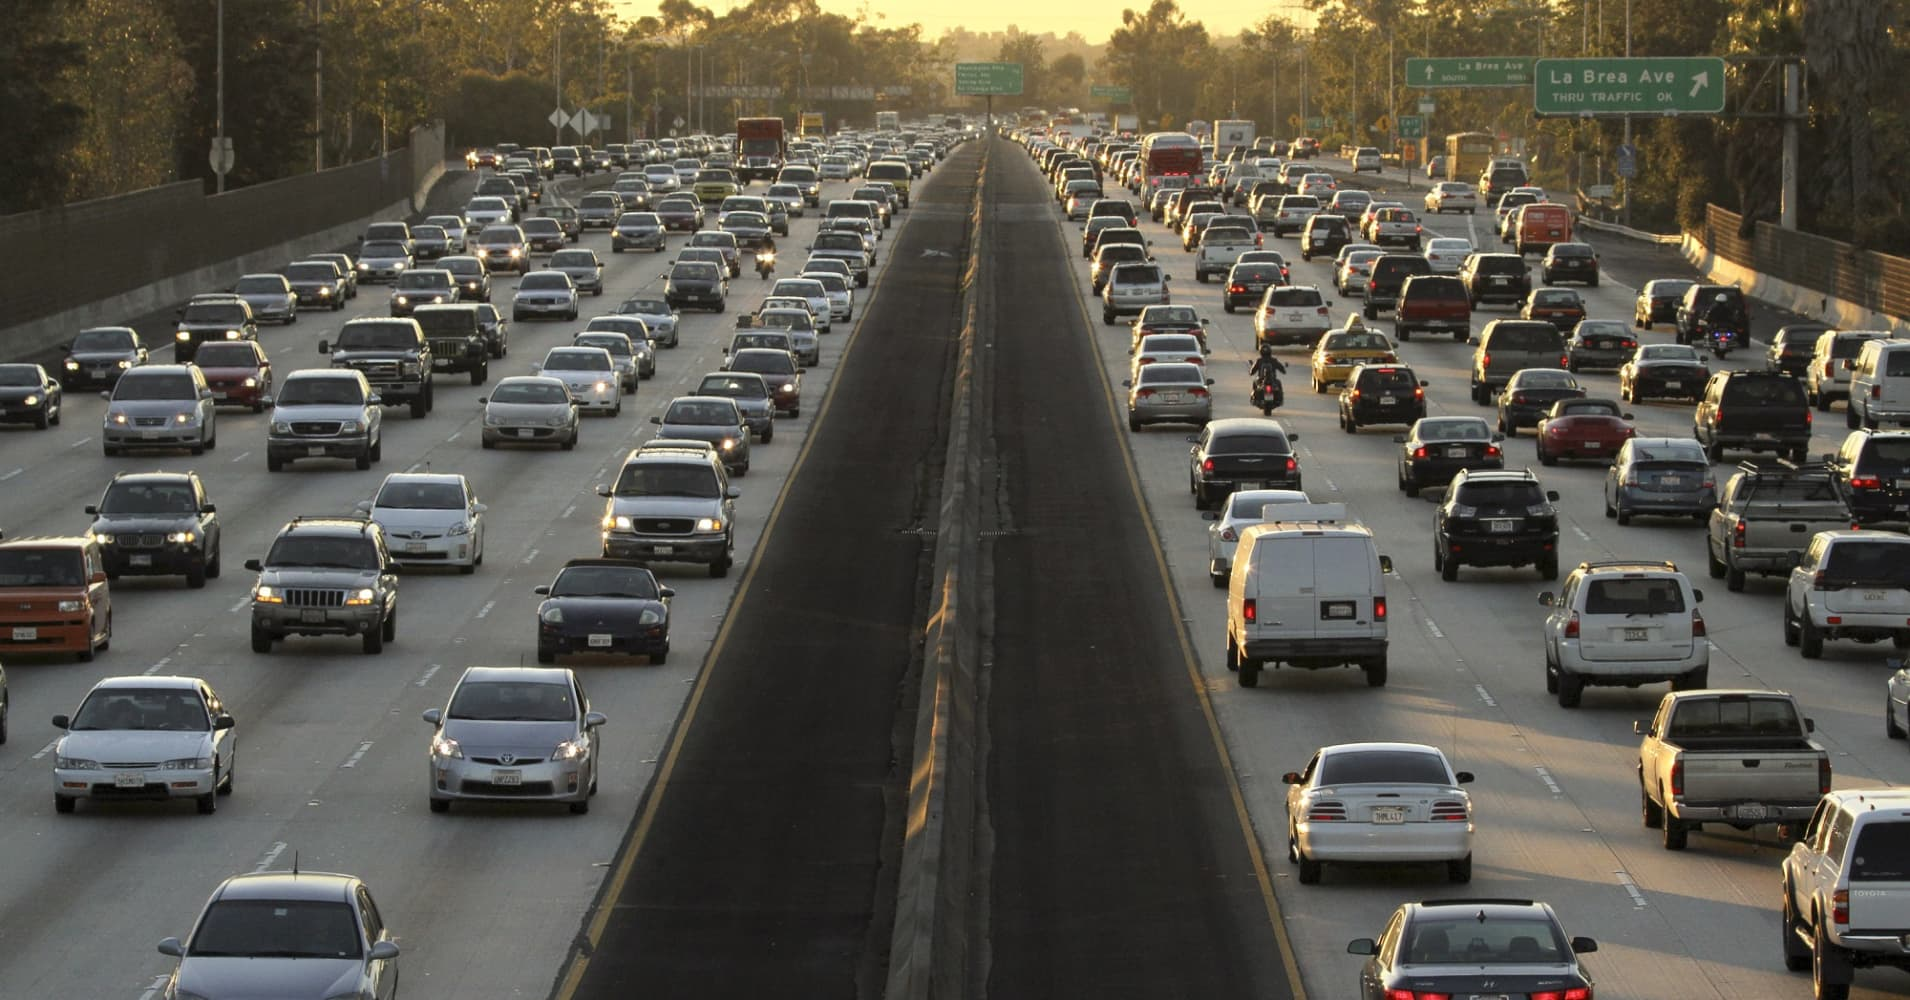 Americans face high gas prices, crowded roads this Memorial Day weekend